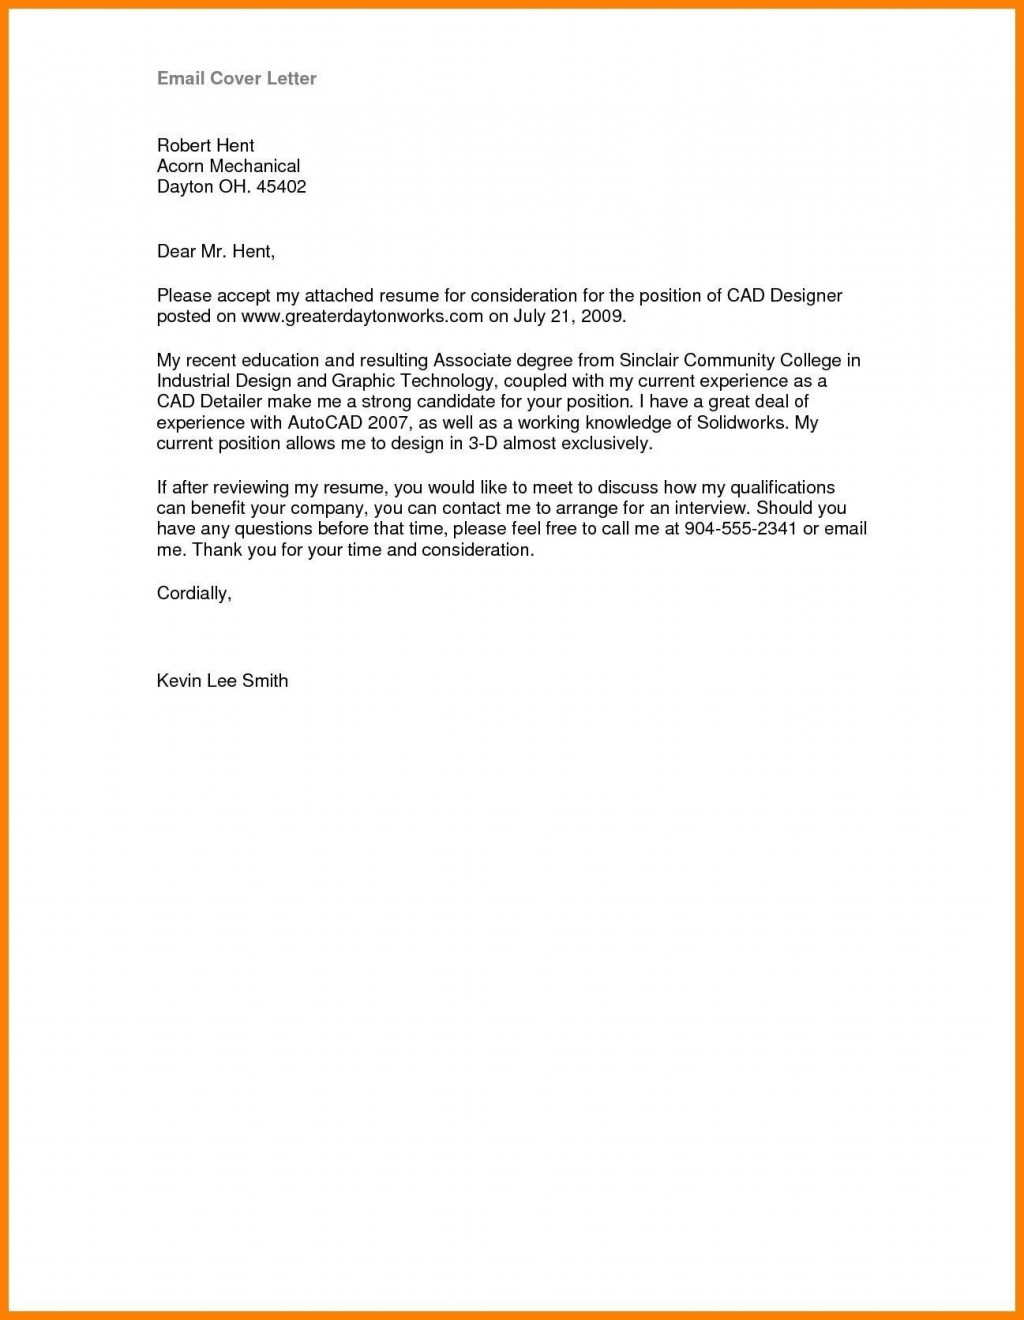 003 Marvelou Email Cover Letter Example For Resume Design  Sample Through AttachedLarge